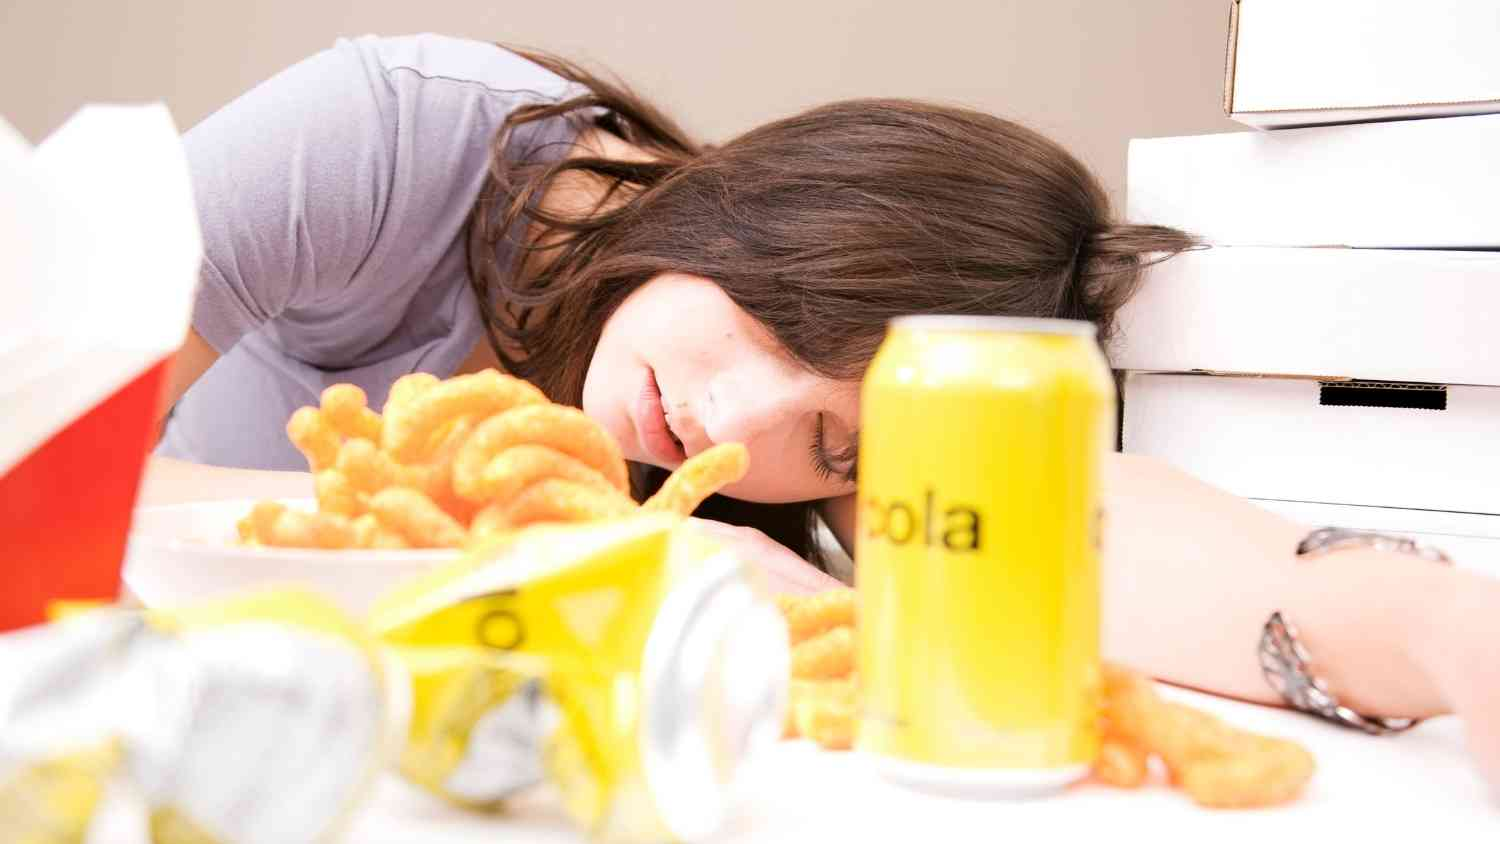 Woman sleeping on plate